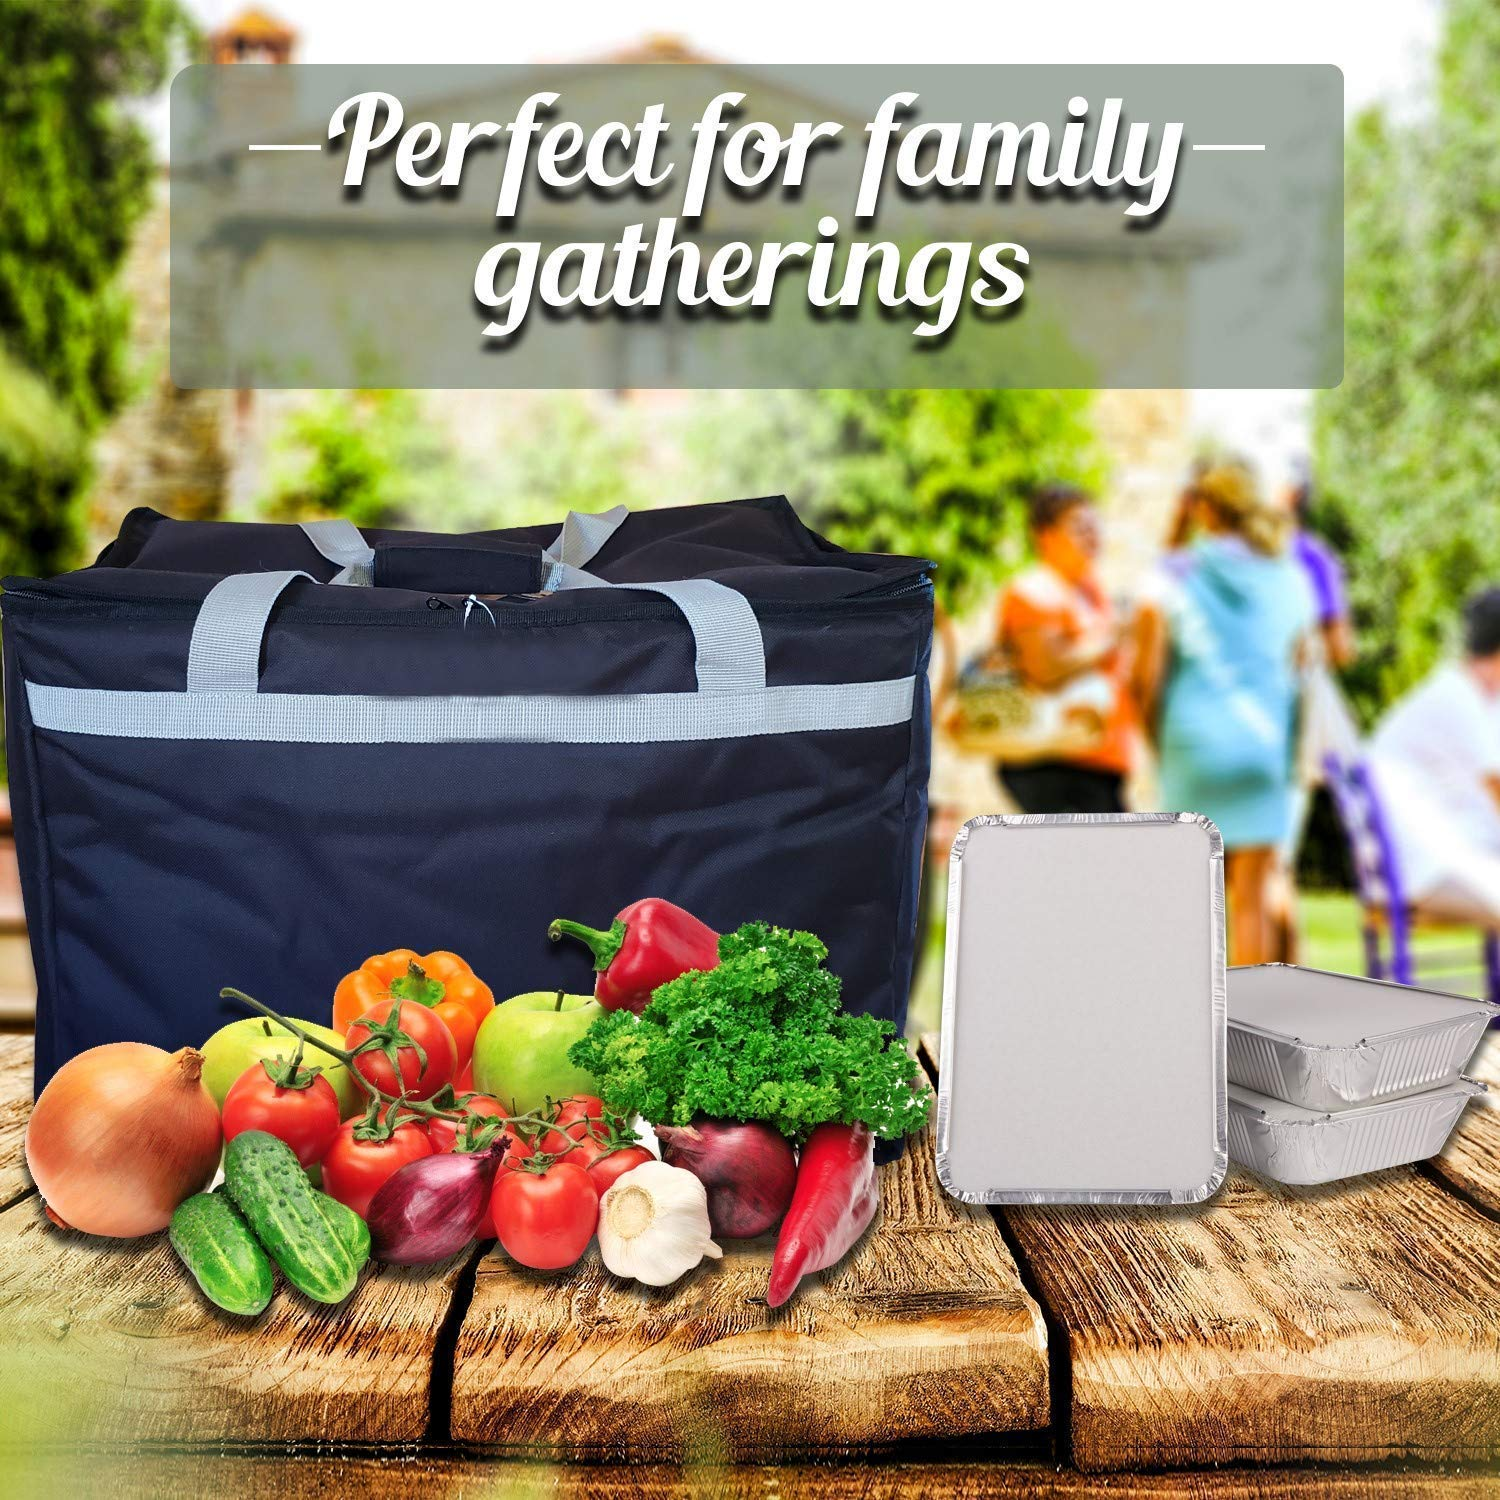 Candid- Insulated Food Delivery Bag (21''L x 14''W x 15''H), Hot/Cold Thermal Lightweight Grocery, Catering, Delivery or Party Bag. by CANDID (Image #5)